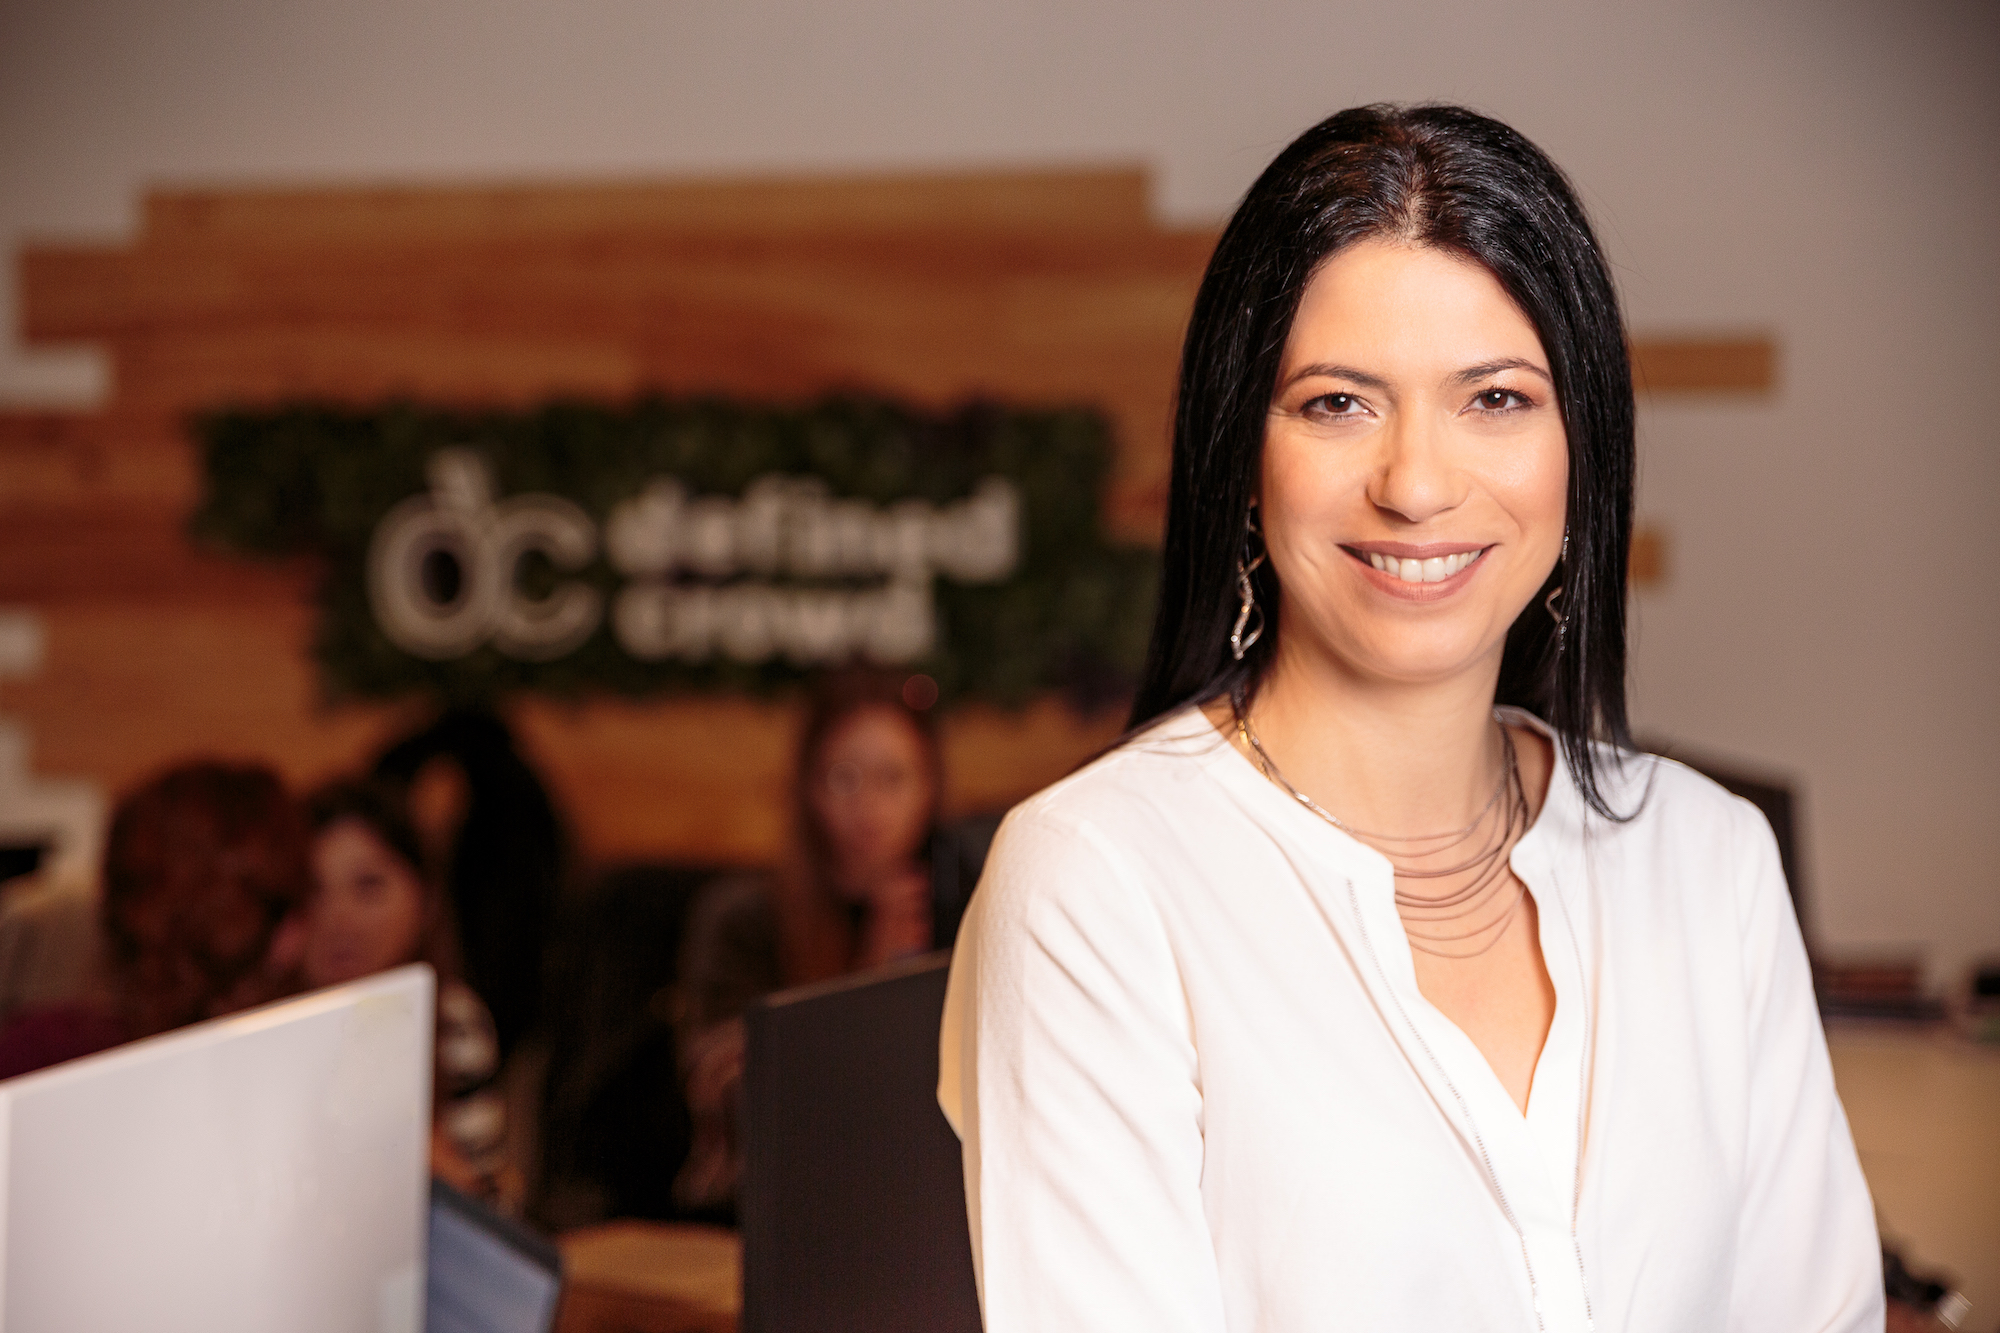 DefinedCrowd CEO Daniela Braga on the future of AI, training data, and women in tech